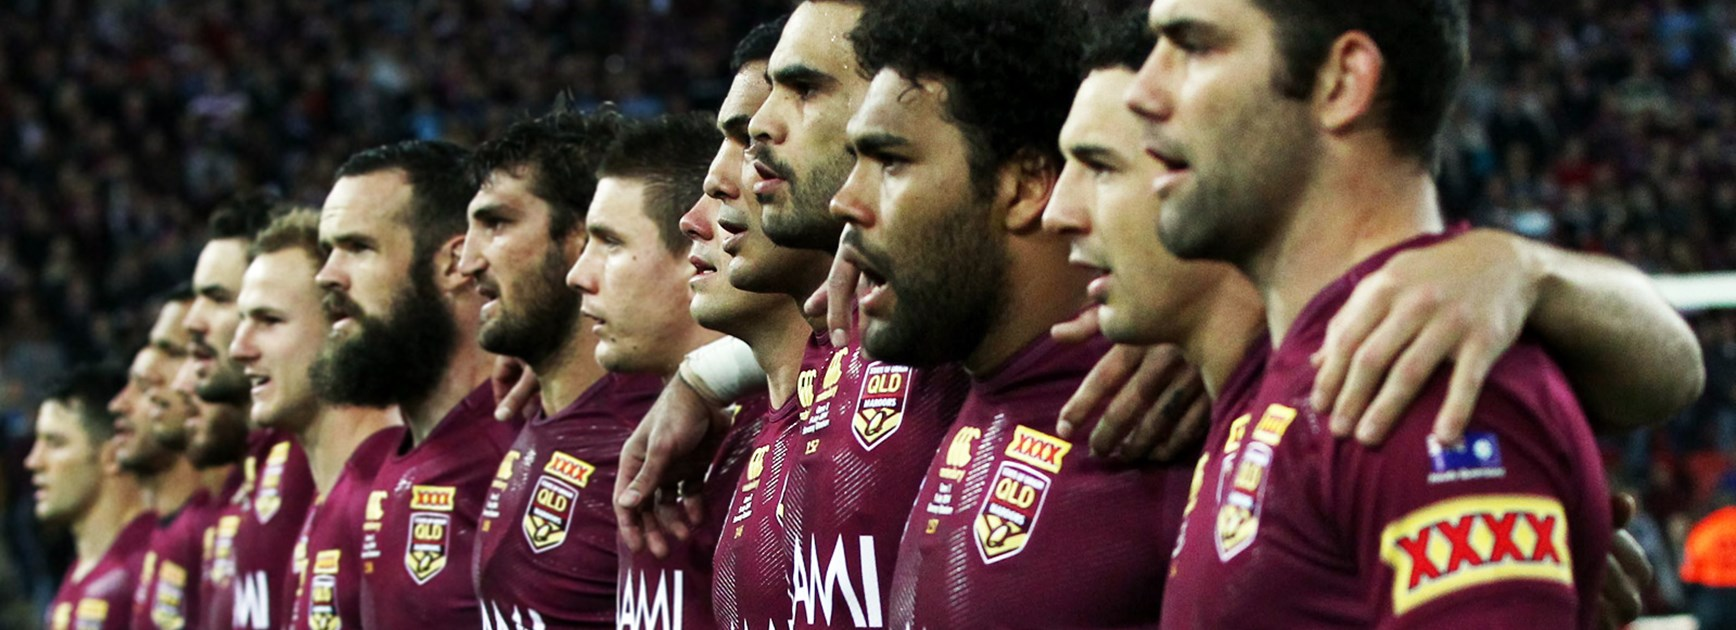 The Queensland Maroons ahead of last year's State of Origin III.